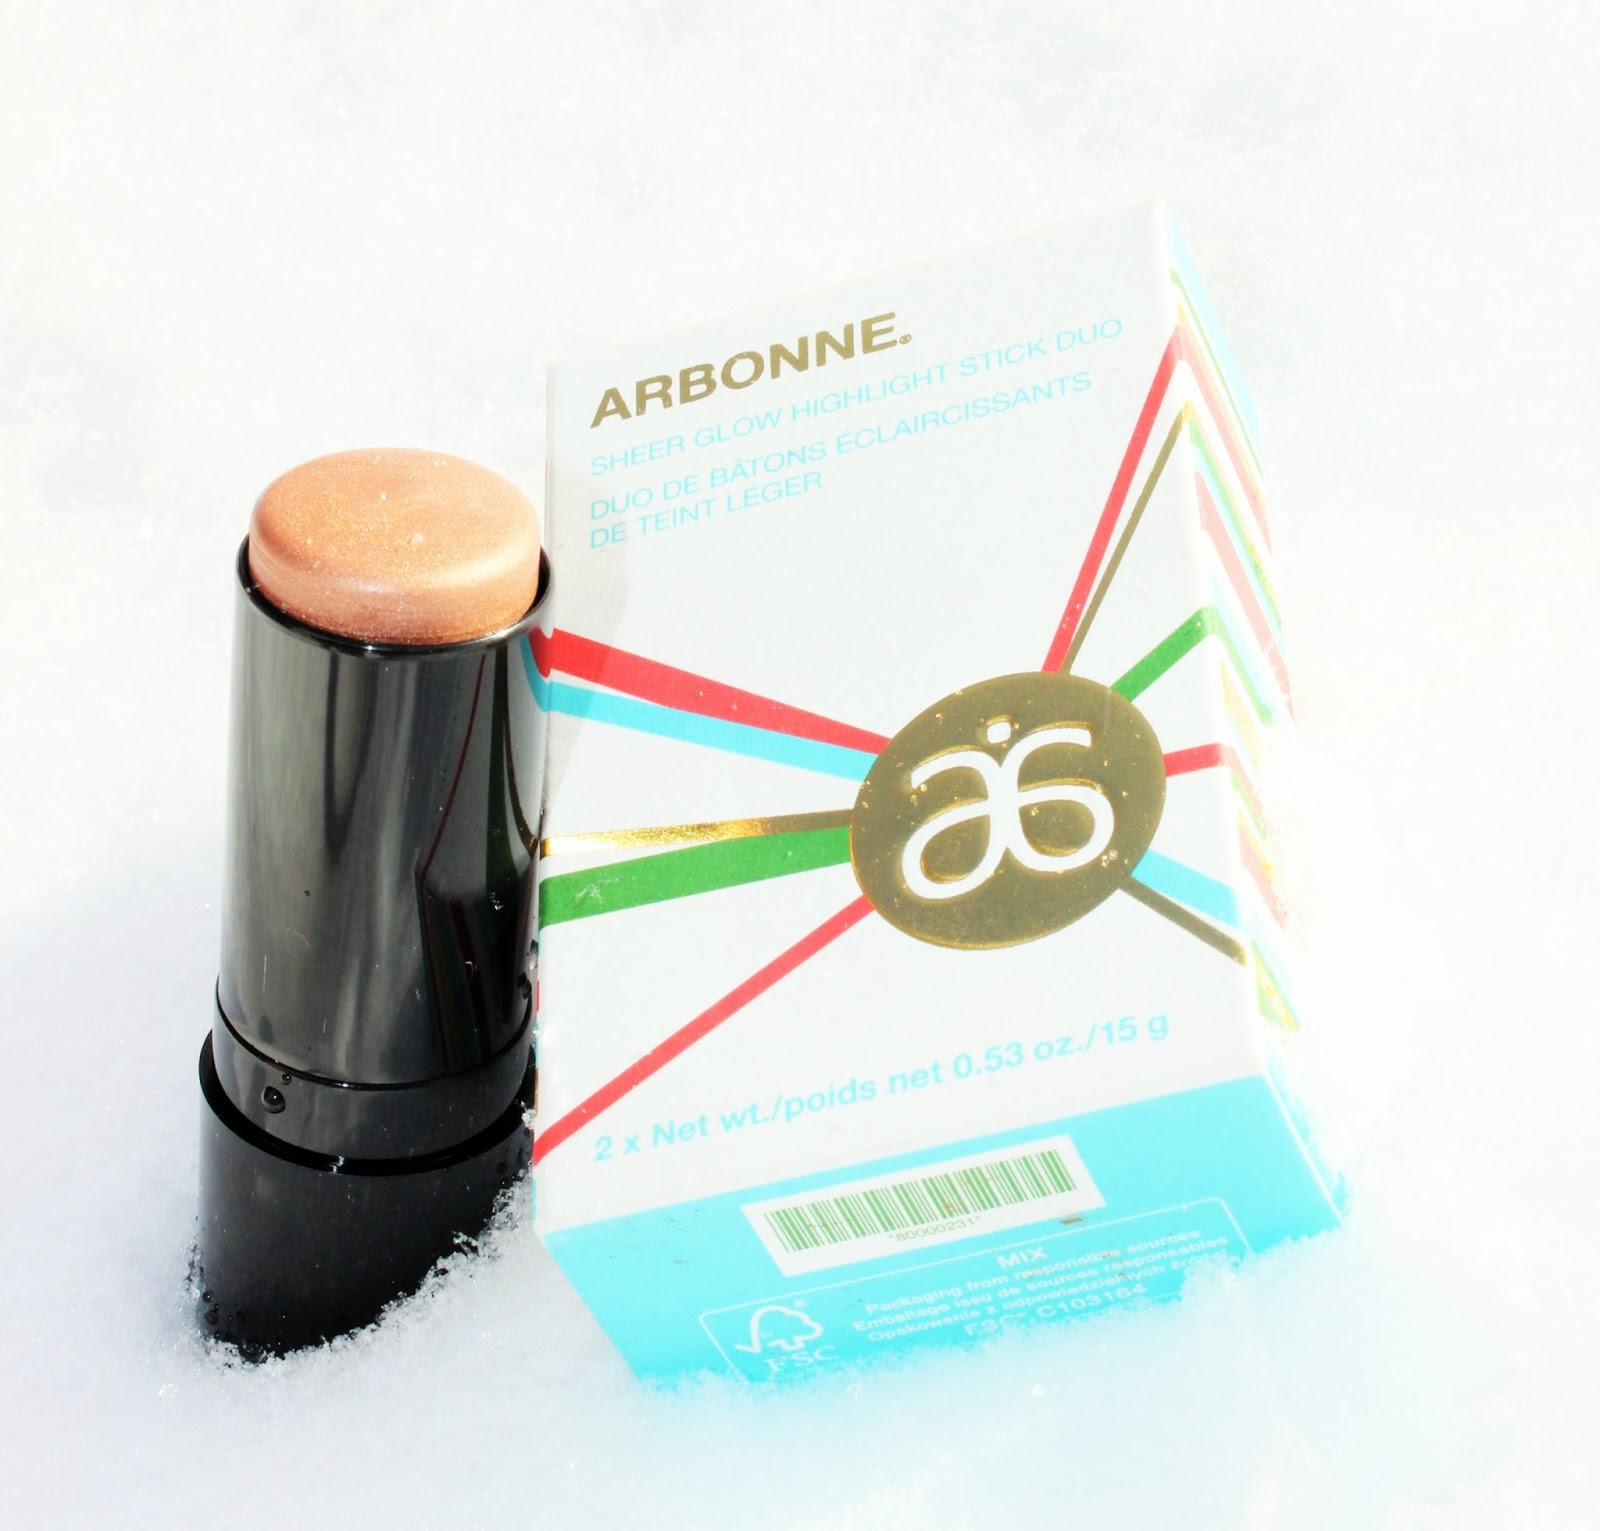 A REVIEW OF ARBONNE SHEER GLOW HIGHLIGHT STICK DUO